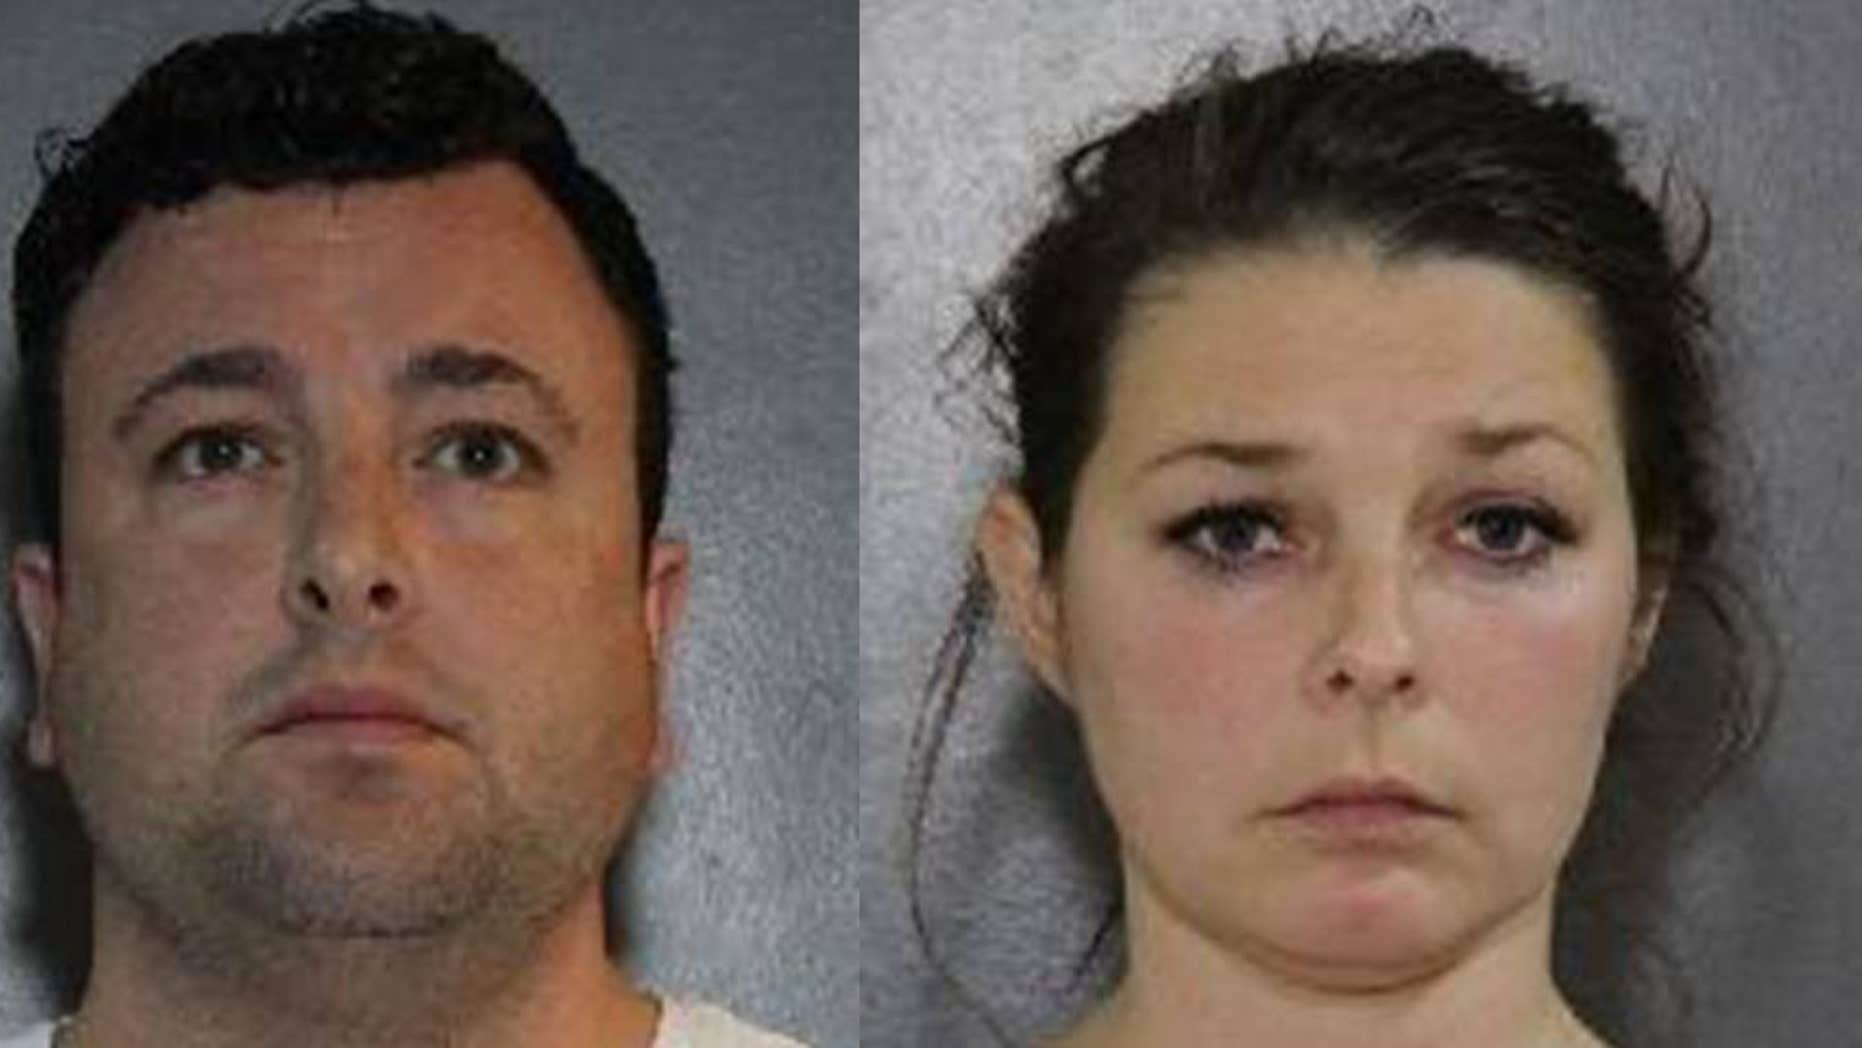 Samuel Emerson, left, and Madelaine Emerson, right, are facing more than two dozen charges after being accused of sexual assault.